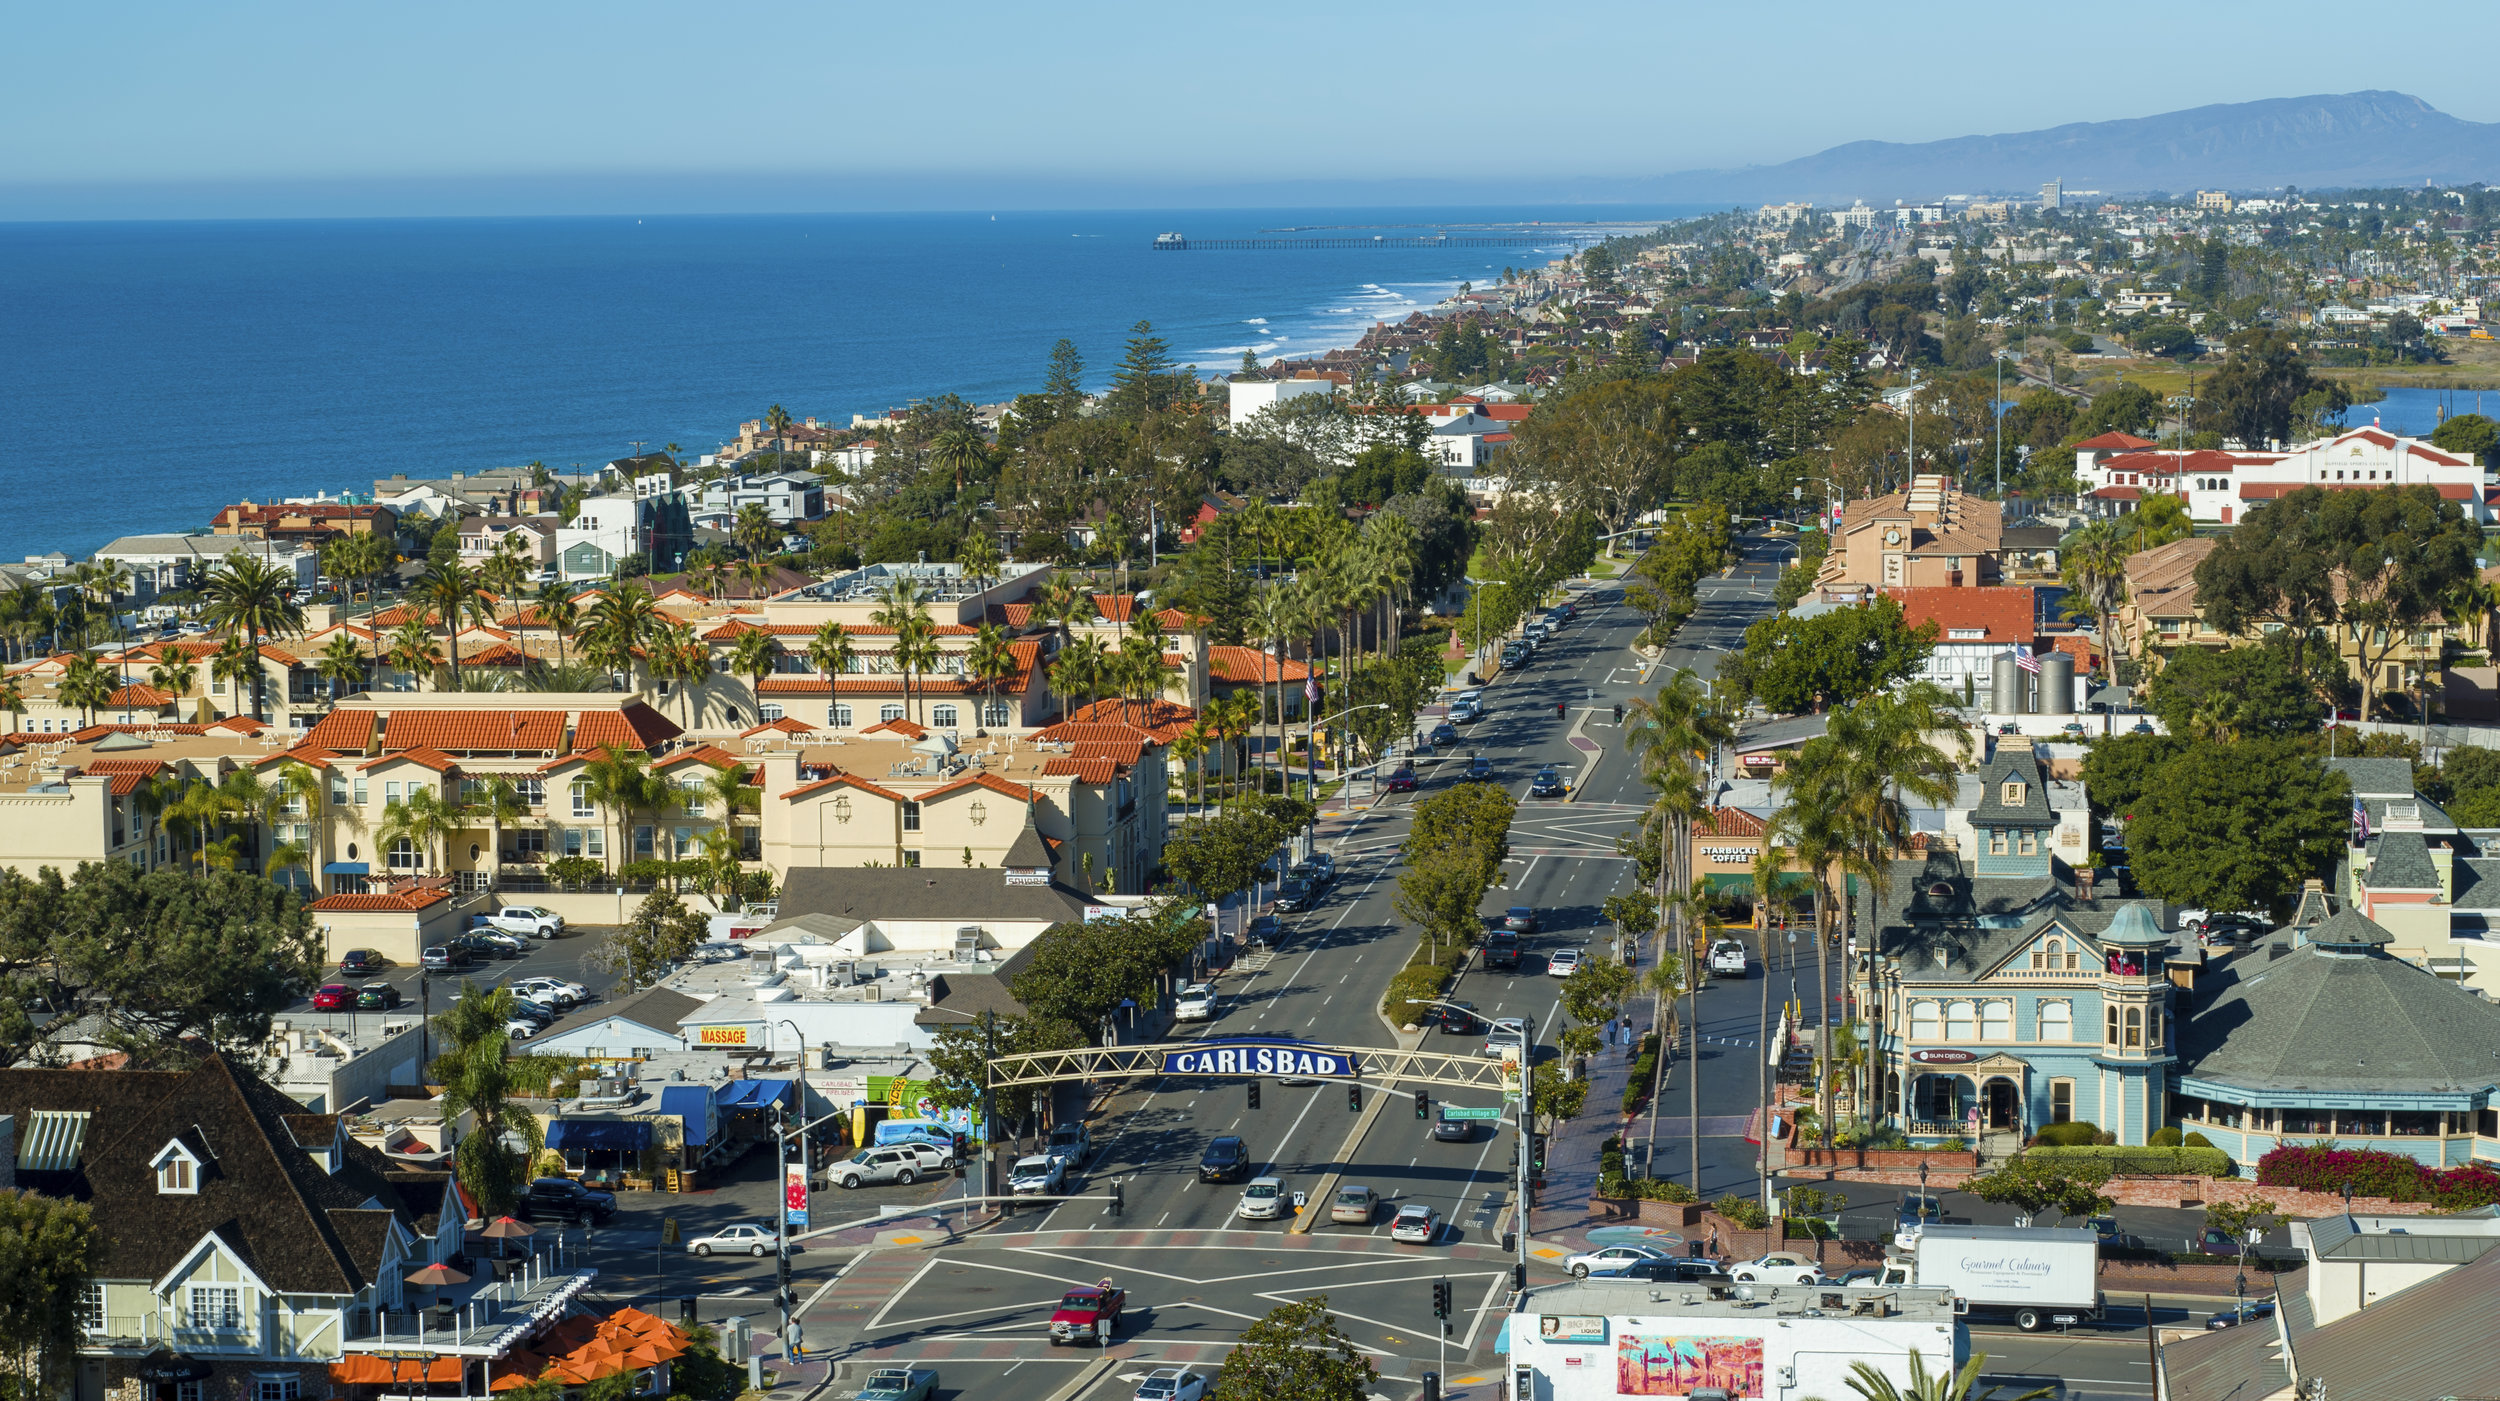 Carlsbad Village - Click below for Carlsbad drone services